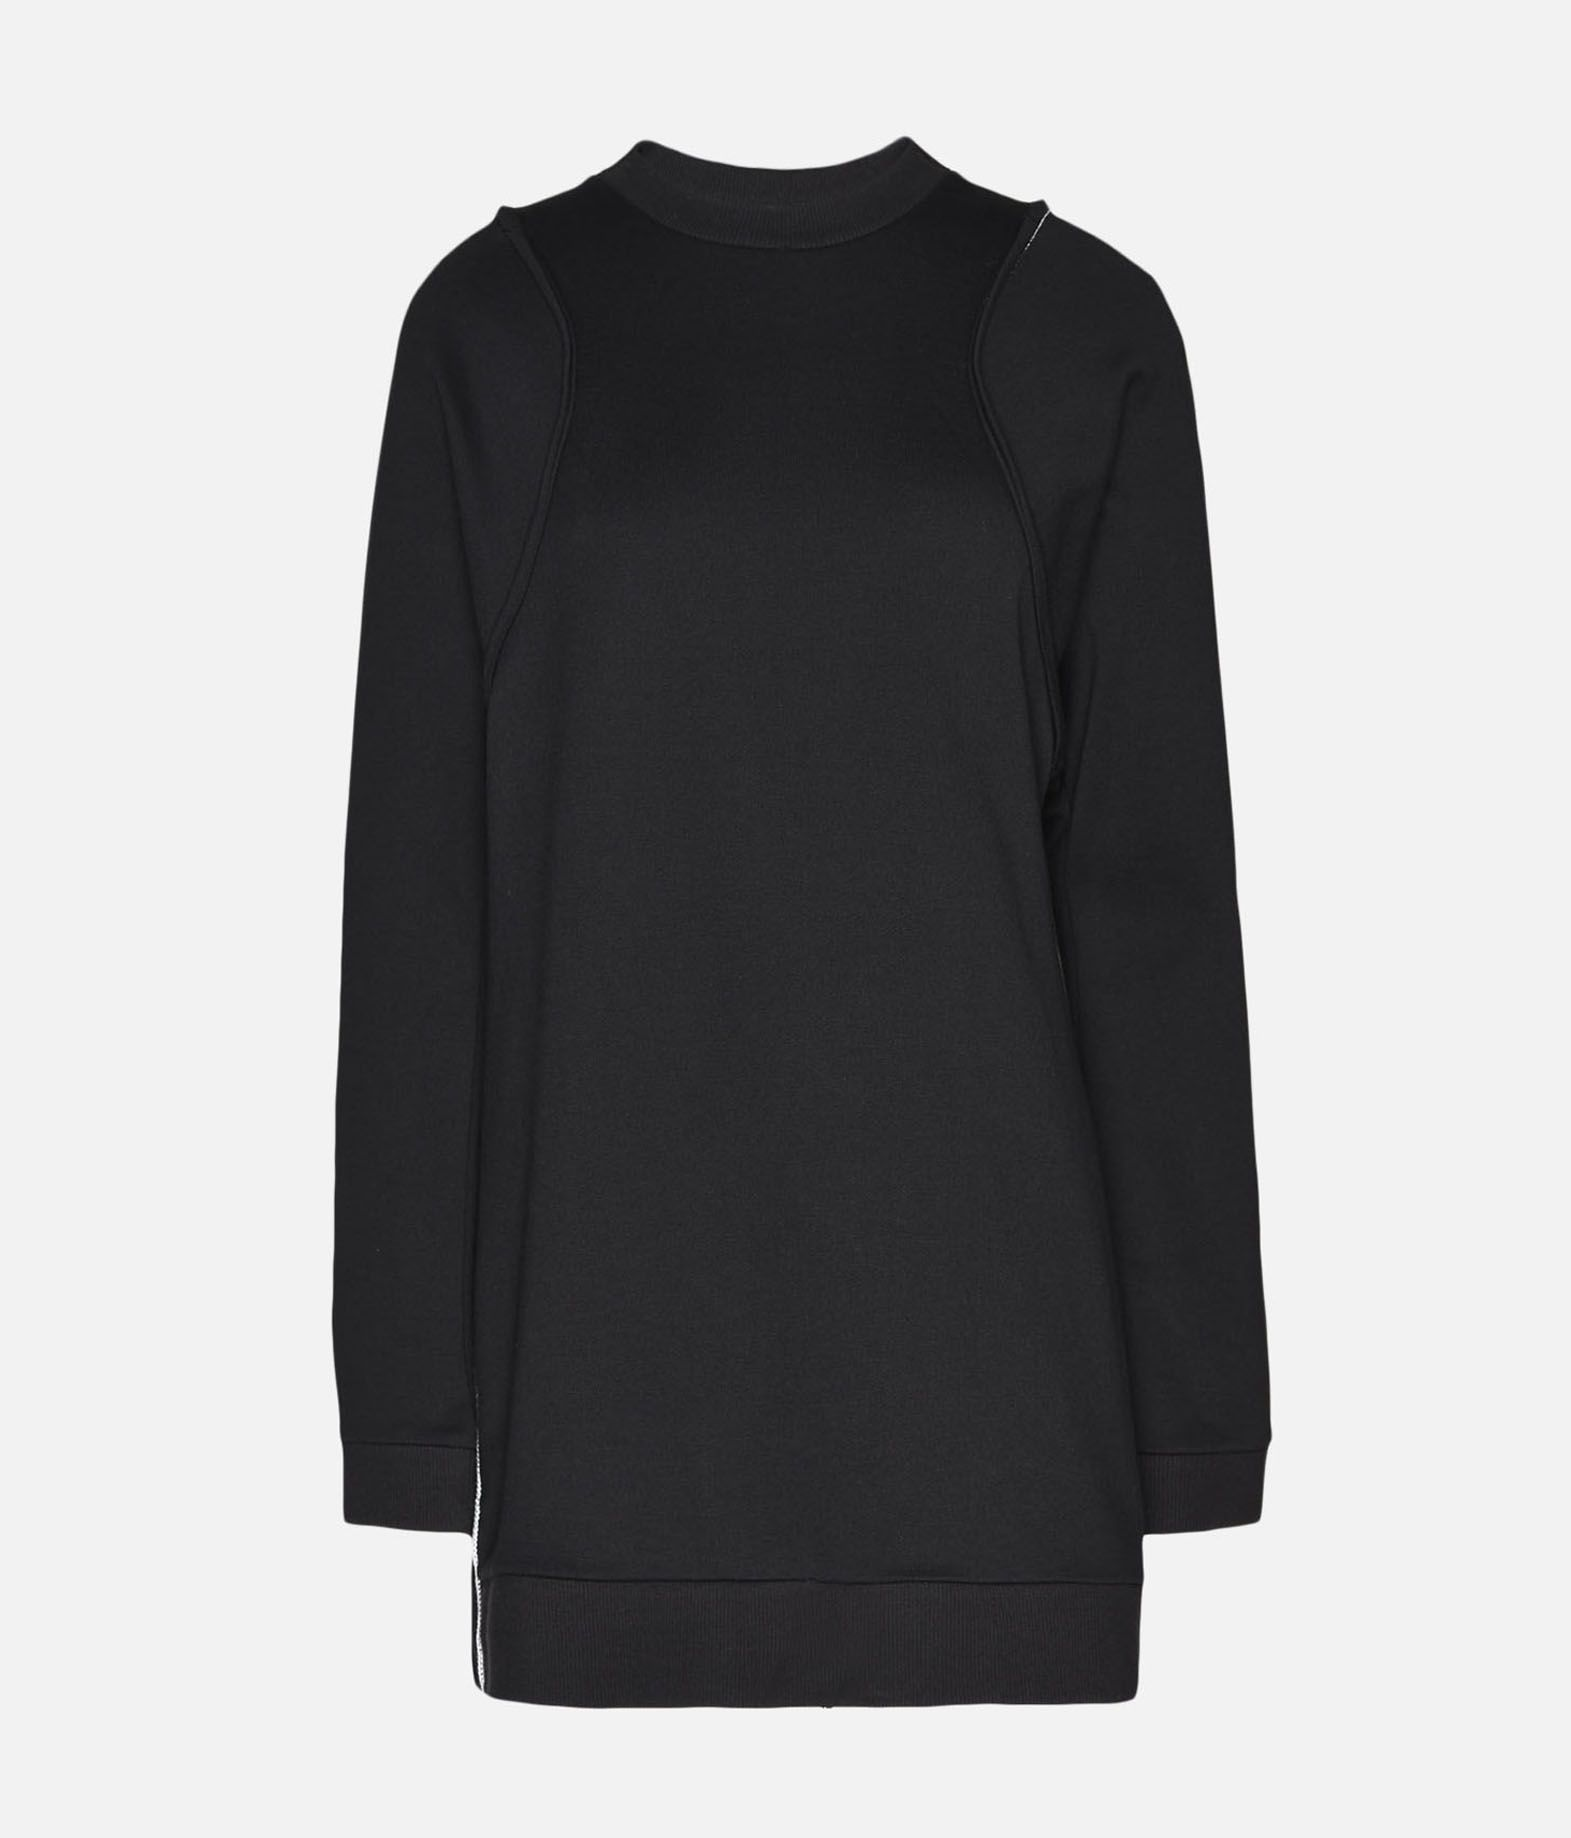 Y-3 Y-3 Sashiko Sweater Sweatshirt Woman f